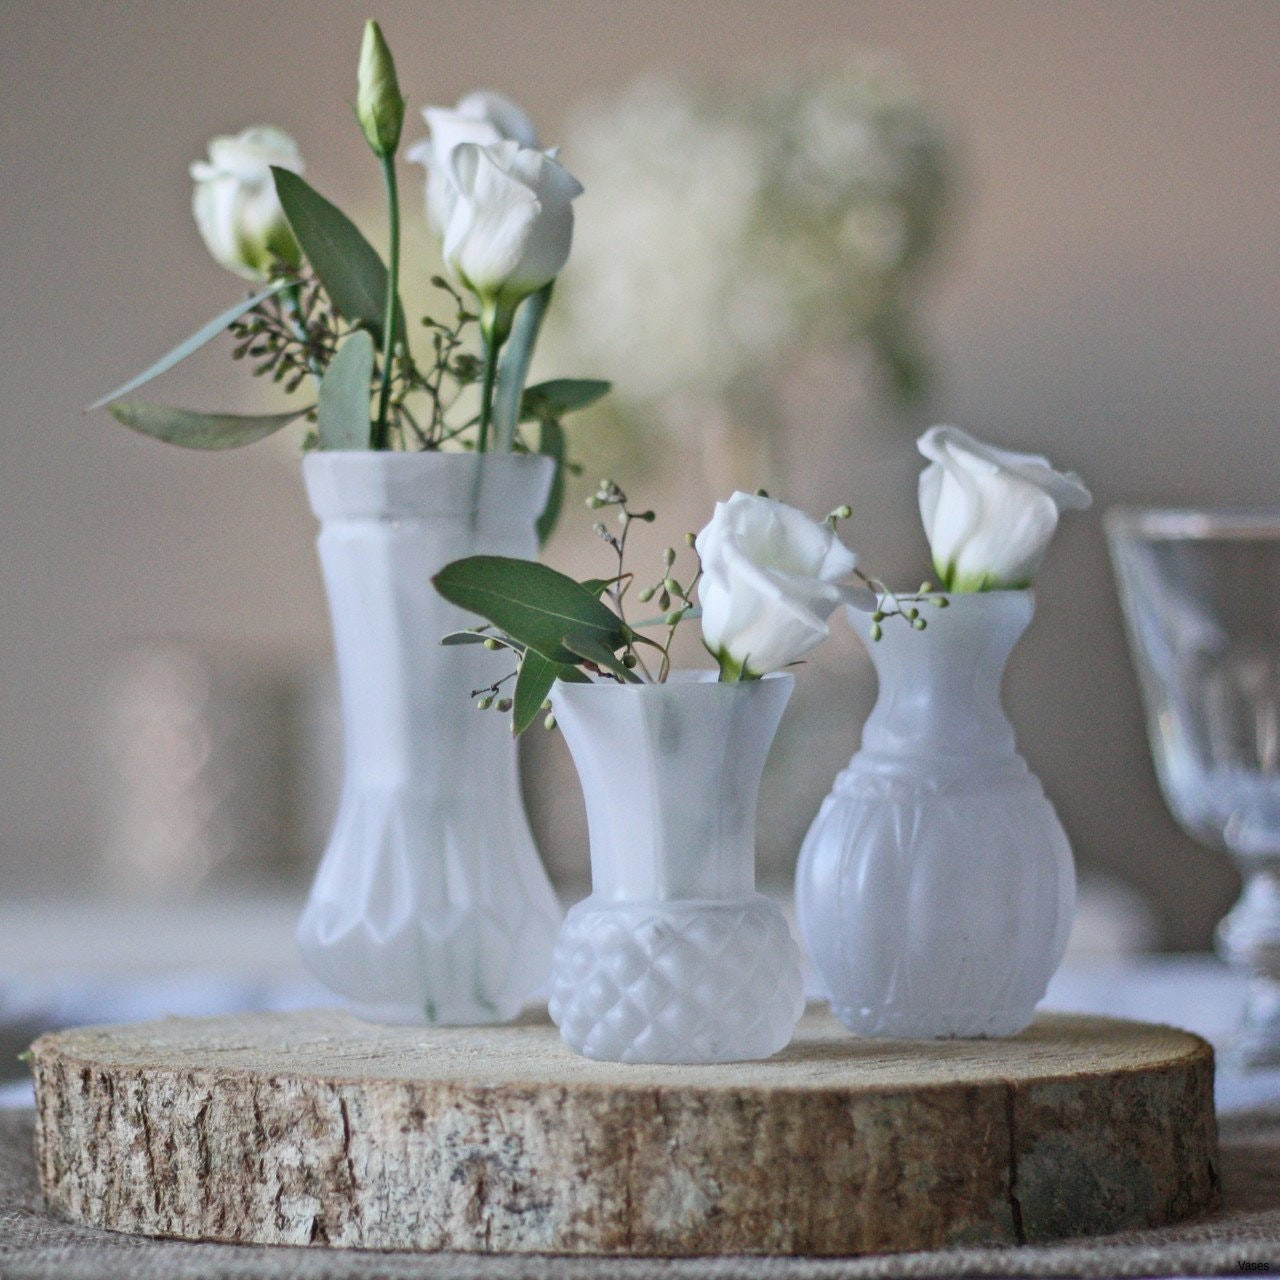 wholesale bud vases for weddings of luxury floral decor for home beautiful decor floral decor floral in awesome jar flower 1h vases bud wedding vase centerpiece idea i 0d white of luxury floral